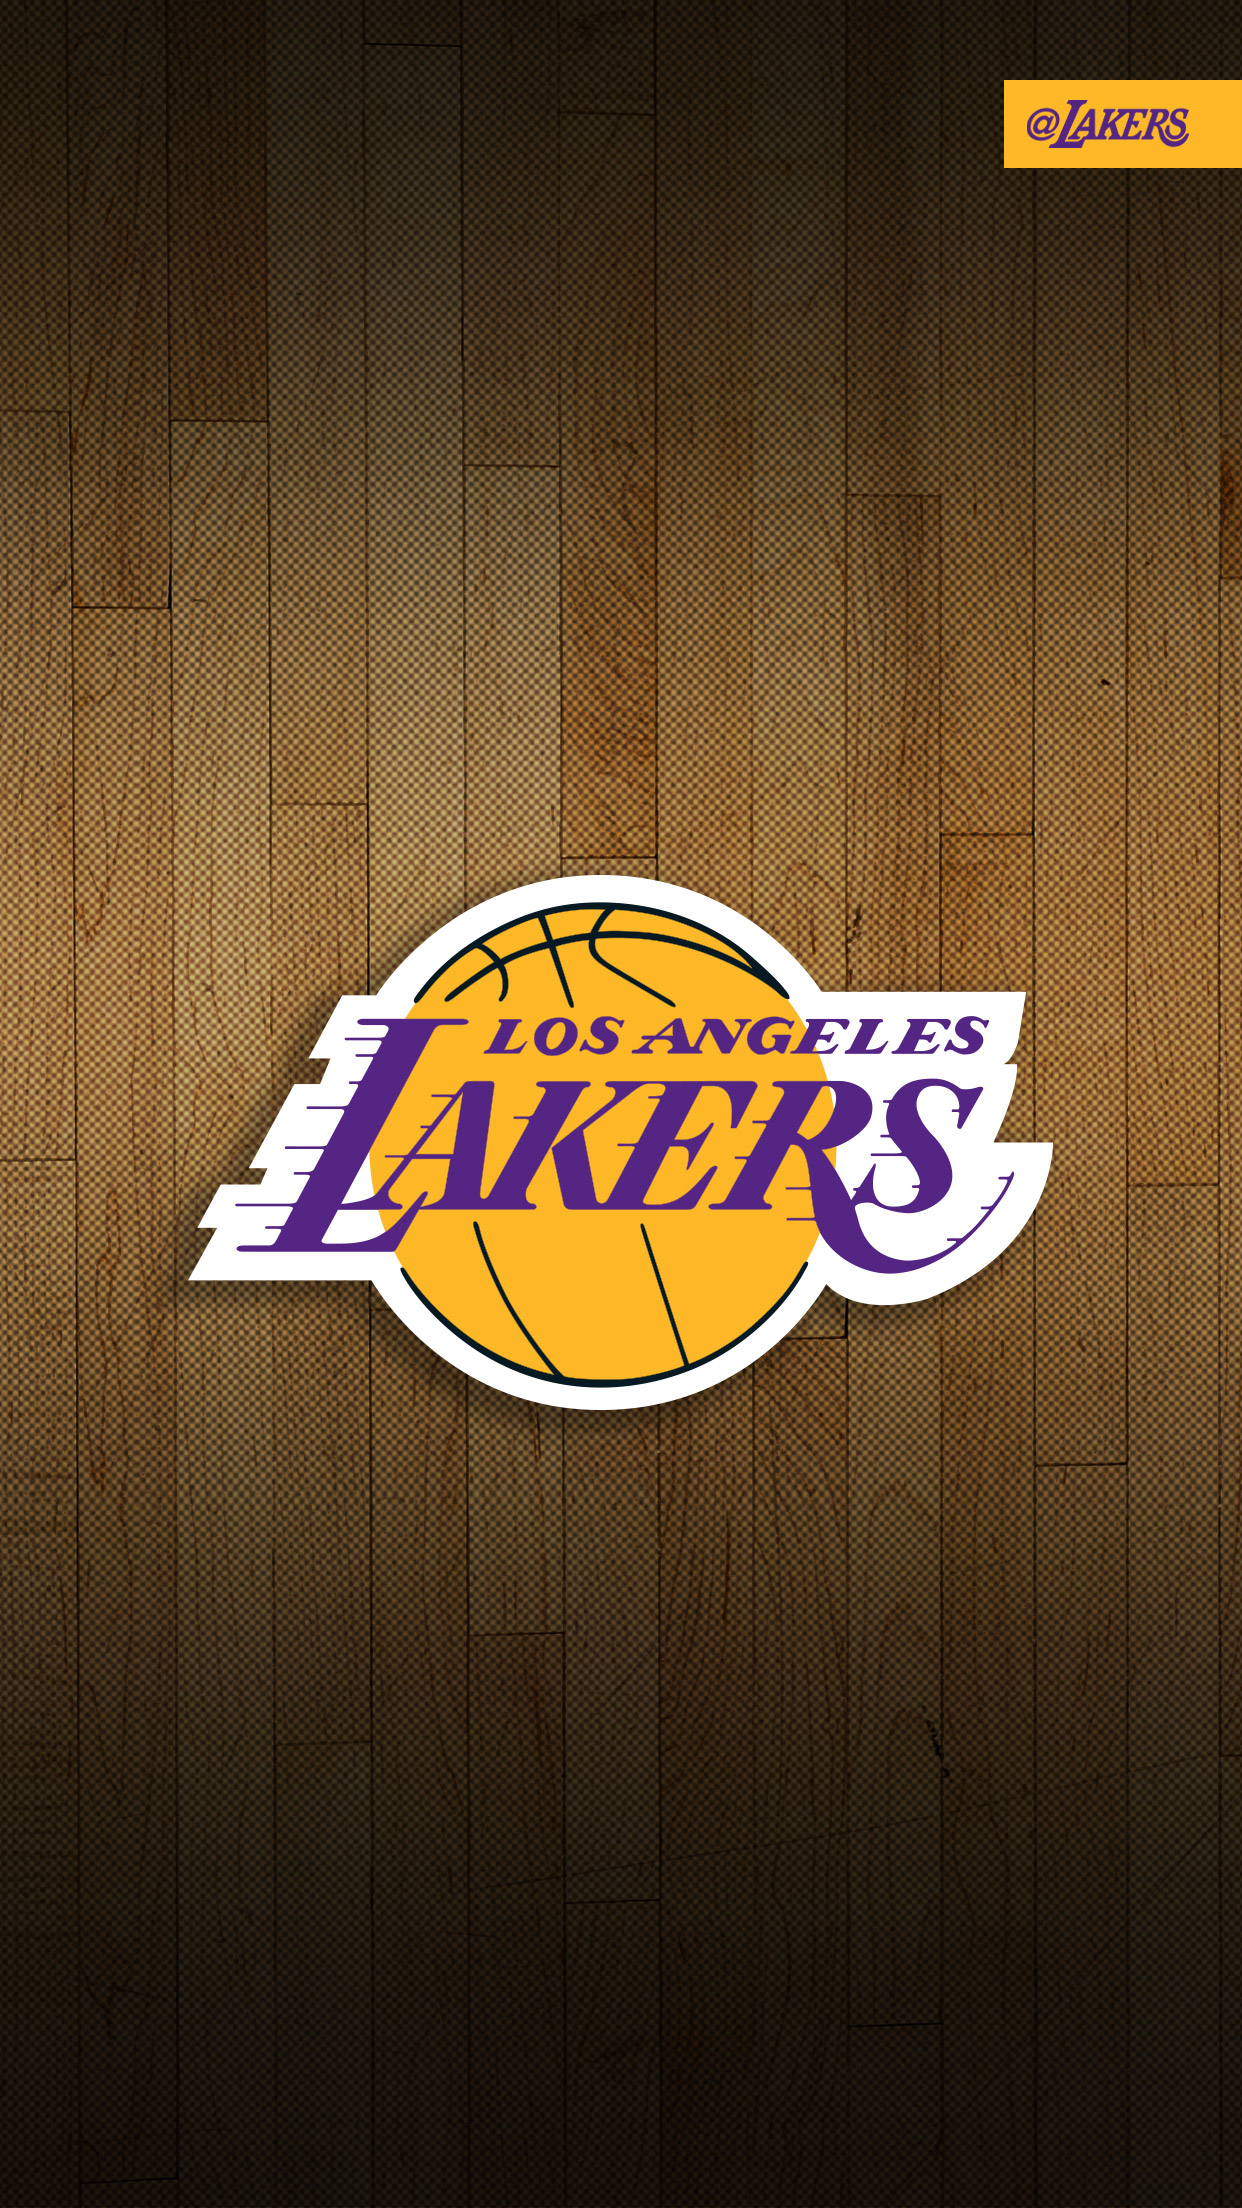 Los Angeles Wallpaper Iphone 6 Plus Basketball Lakers Wallpaper For Iphone X 8 7 6 Free